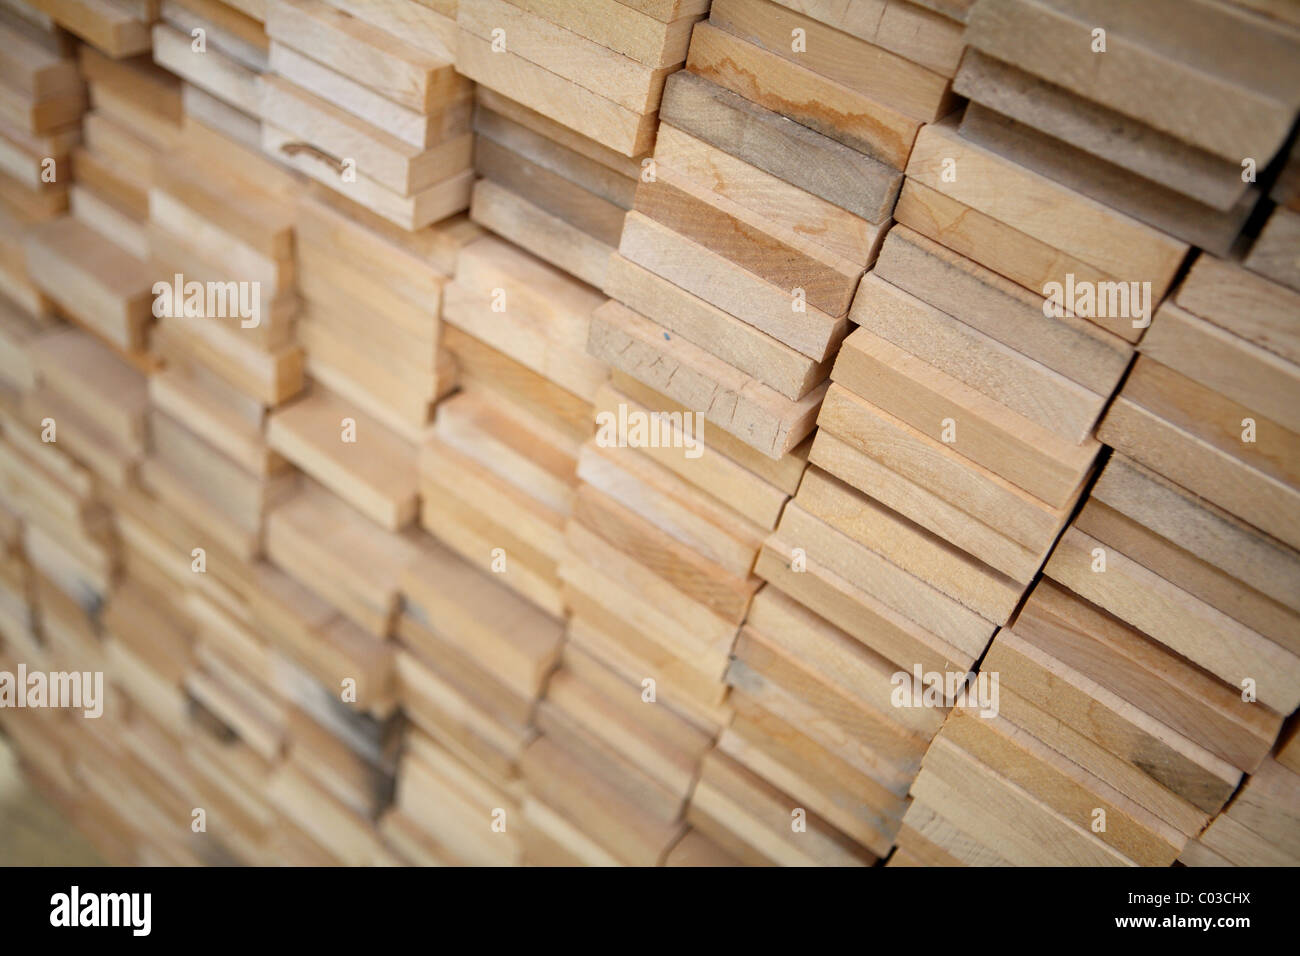 Planks of wood stacked Stock Photo